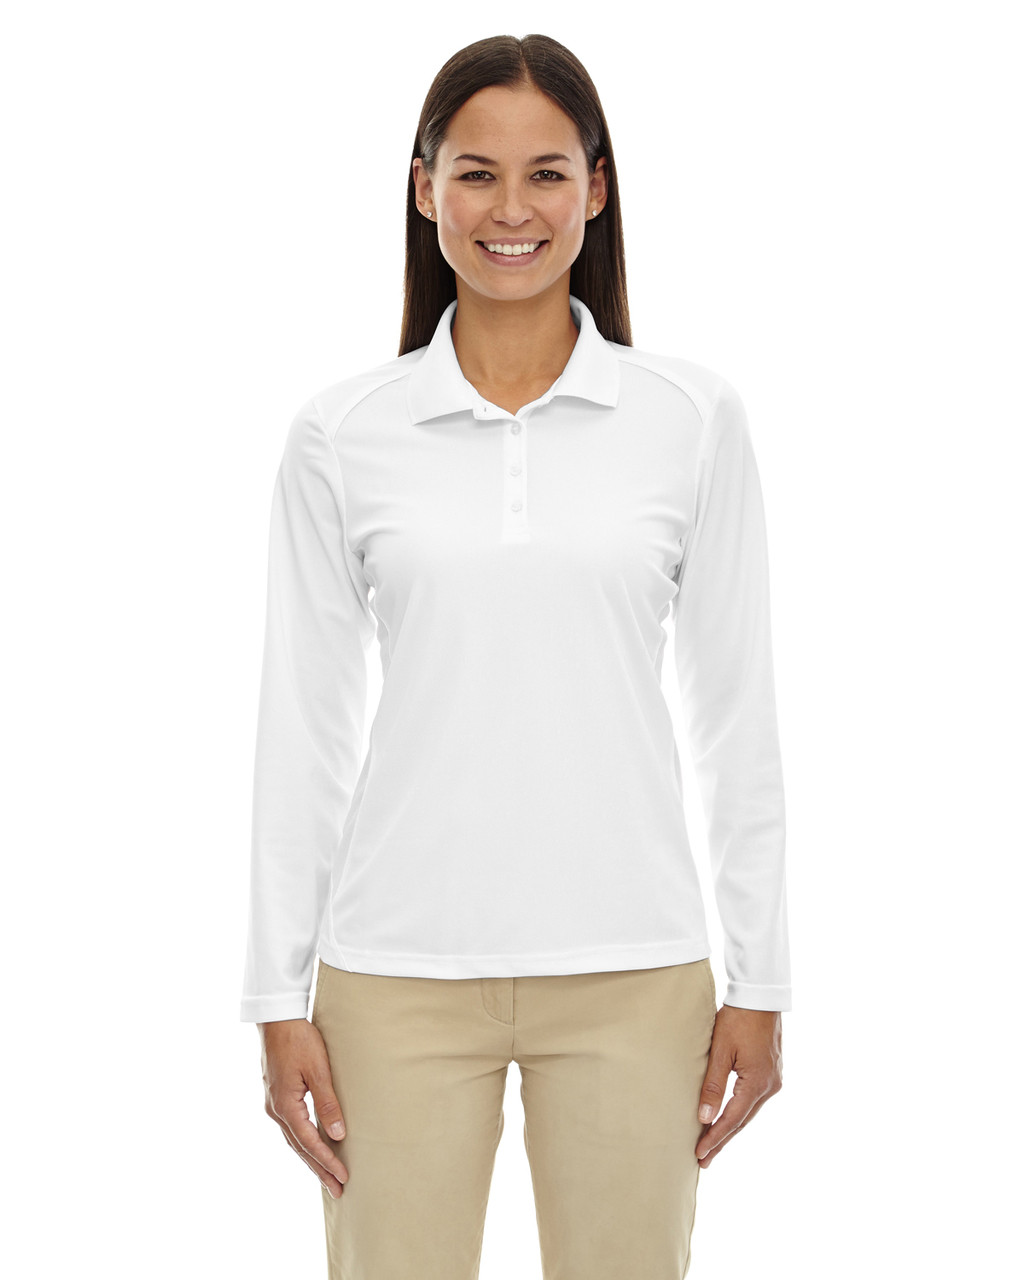 White 75111 Ash City - Extreme Eperformance Ladies' Long-Sleeve Polo Shirt